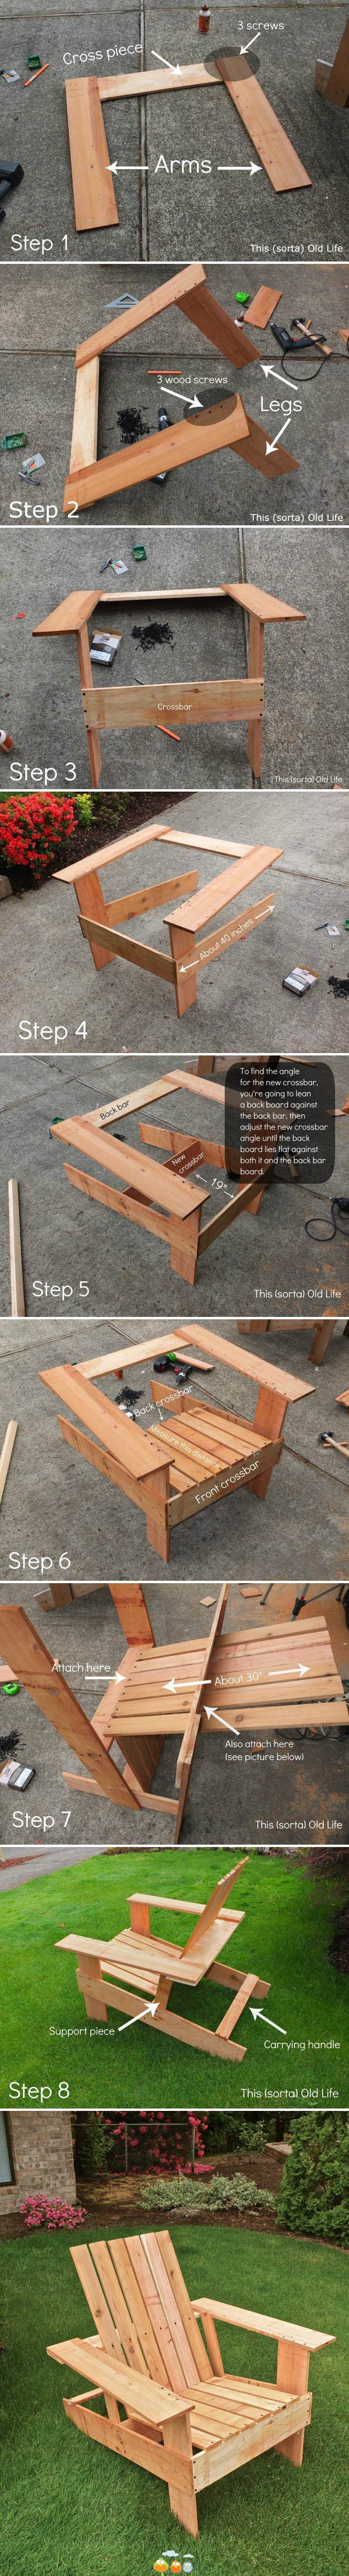 Make your own chair. Would be cute in a smaller version for kids.